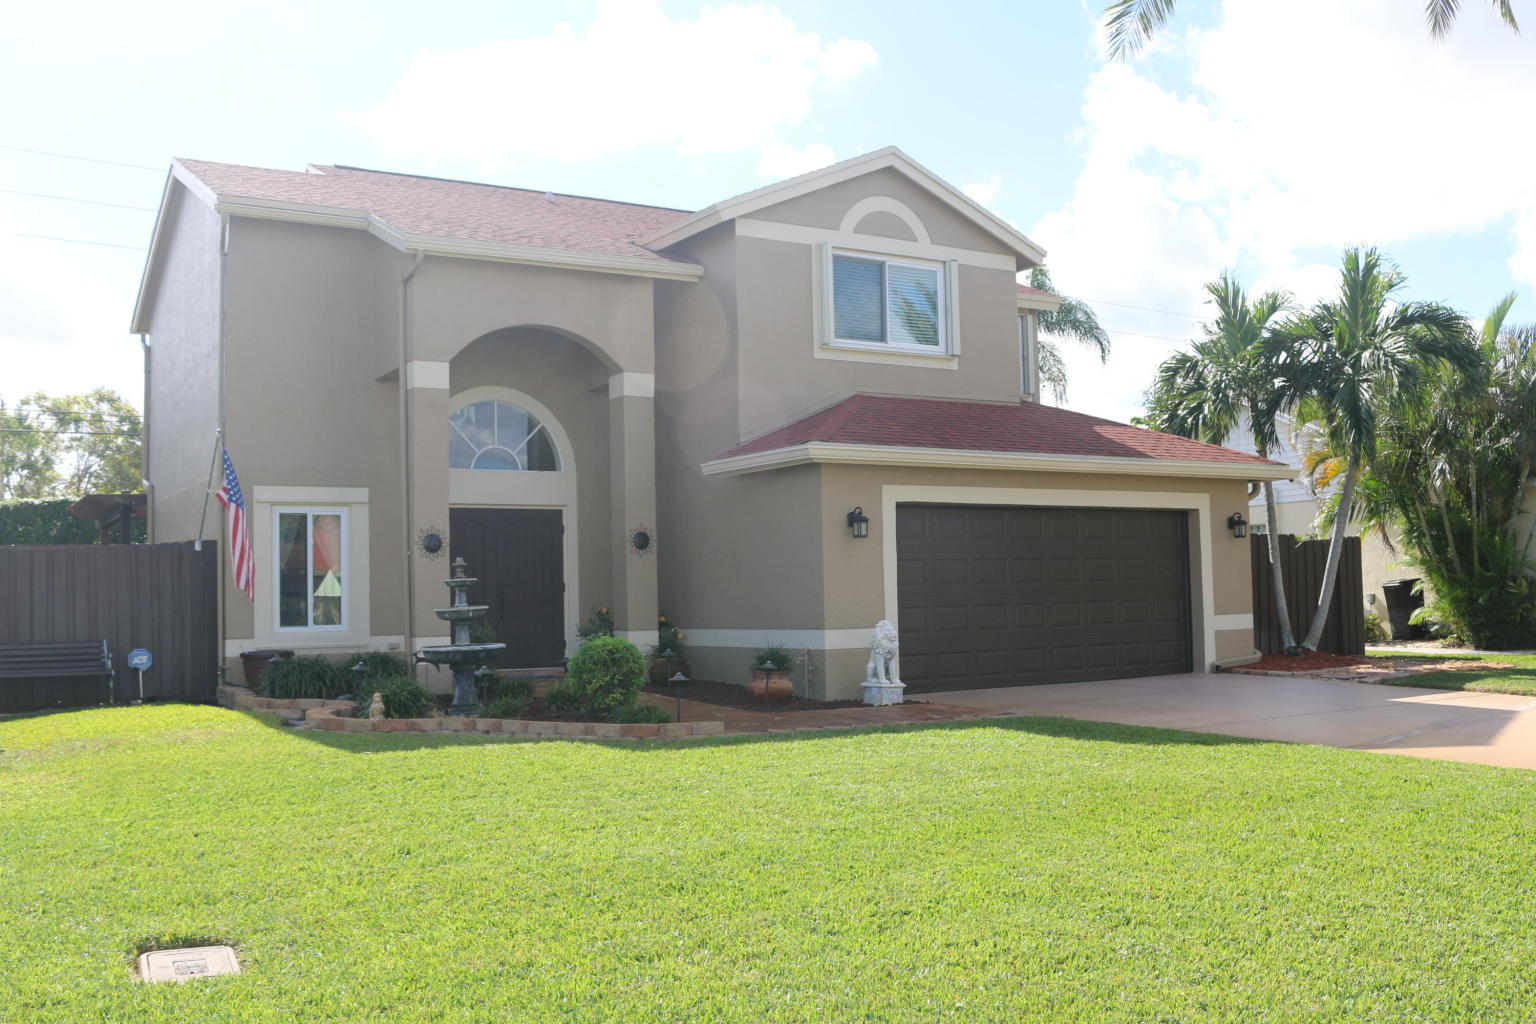 Alden Ridge Homes For Sale In Boynton Beach